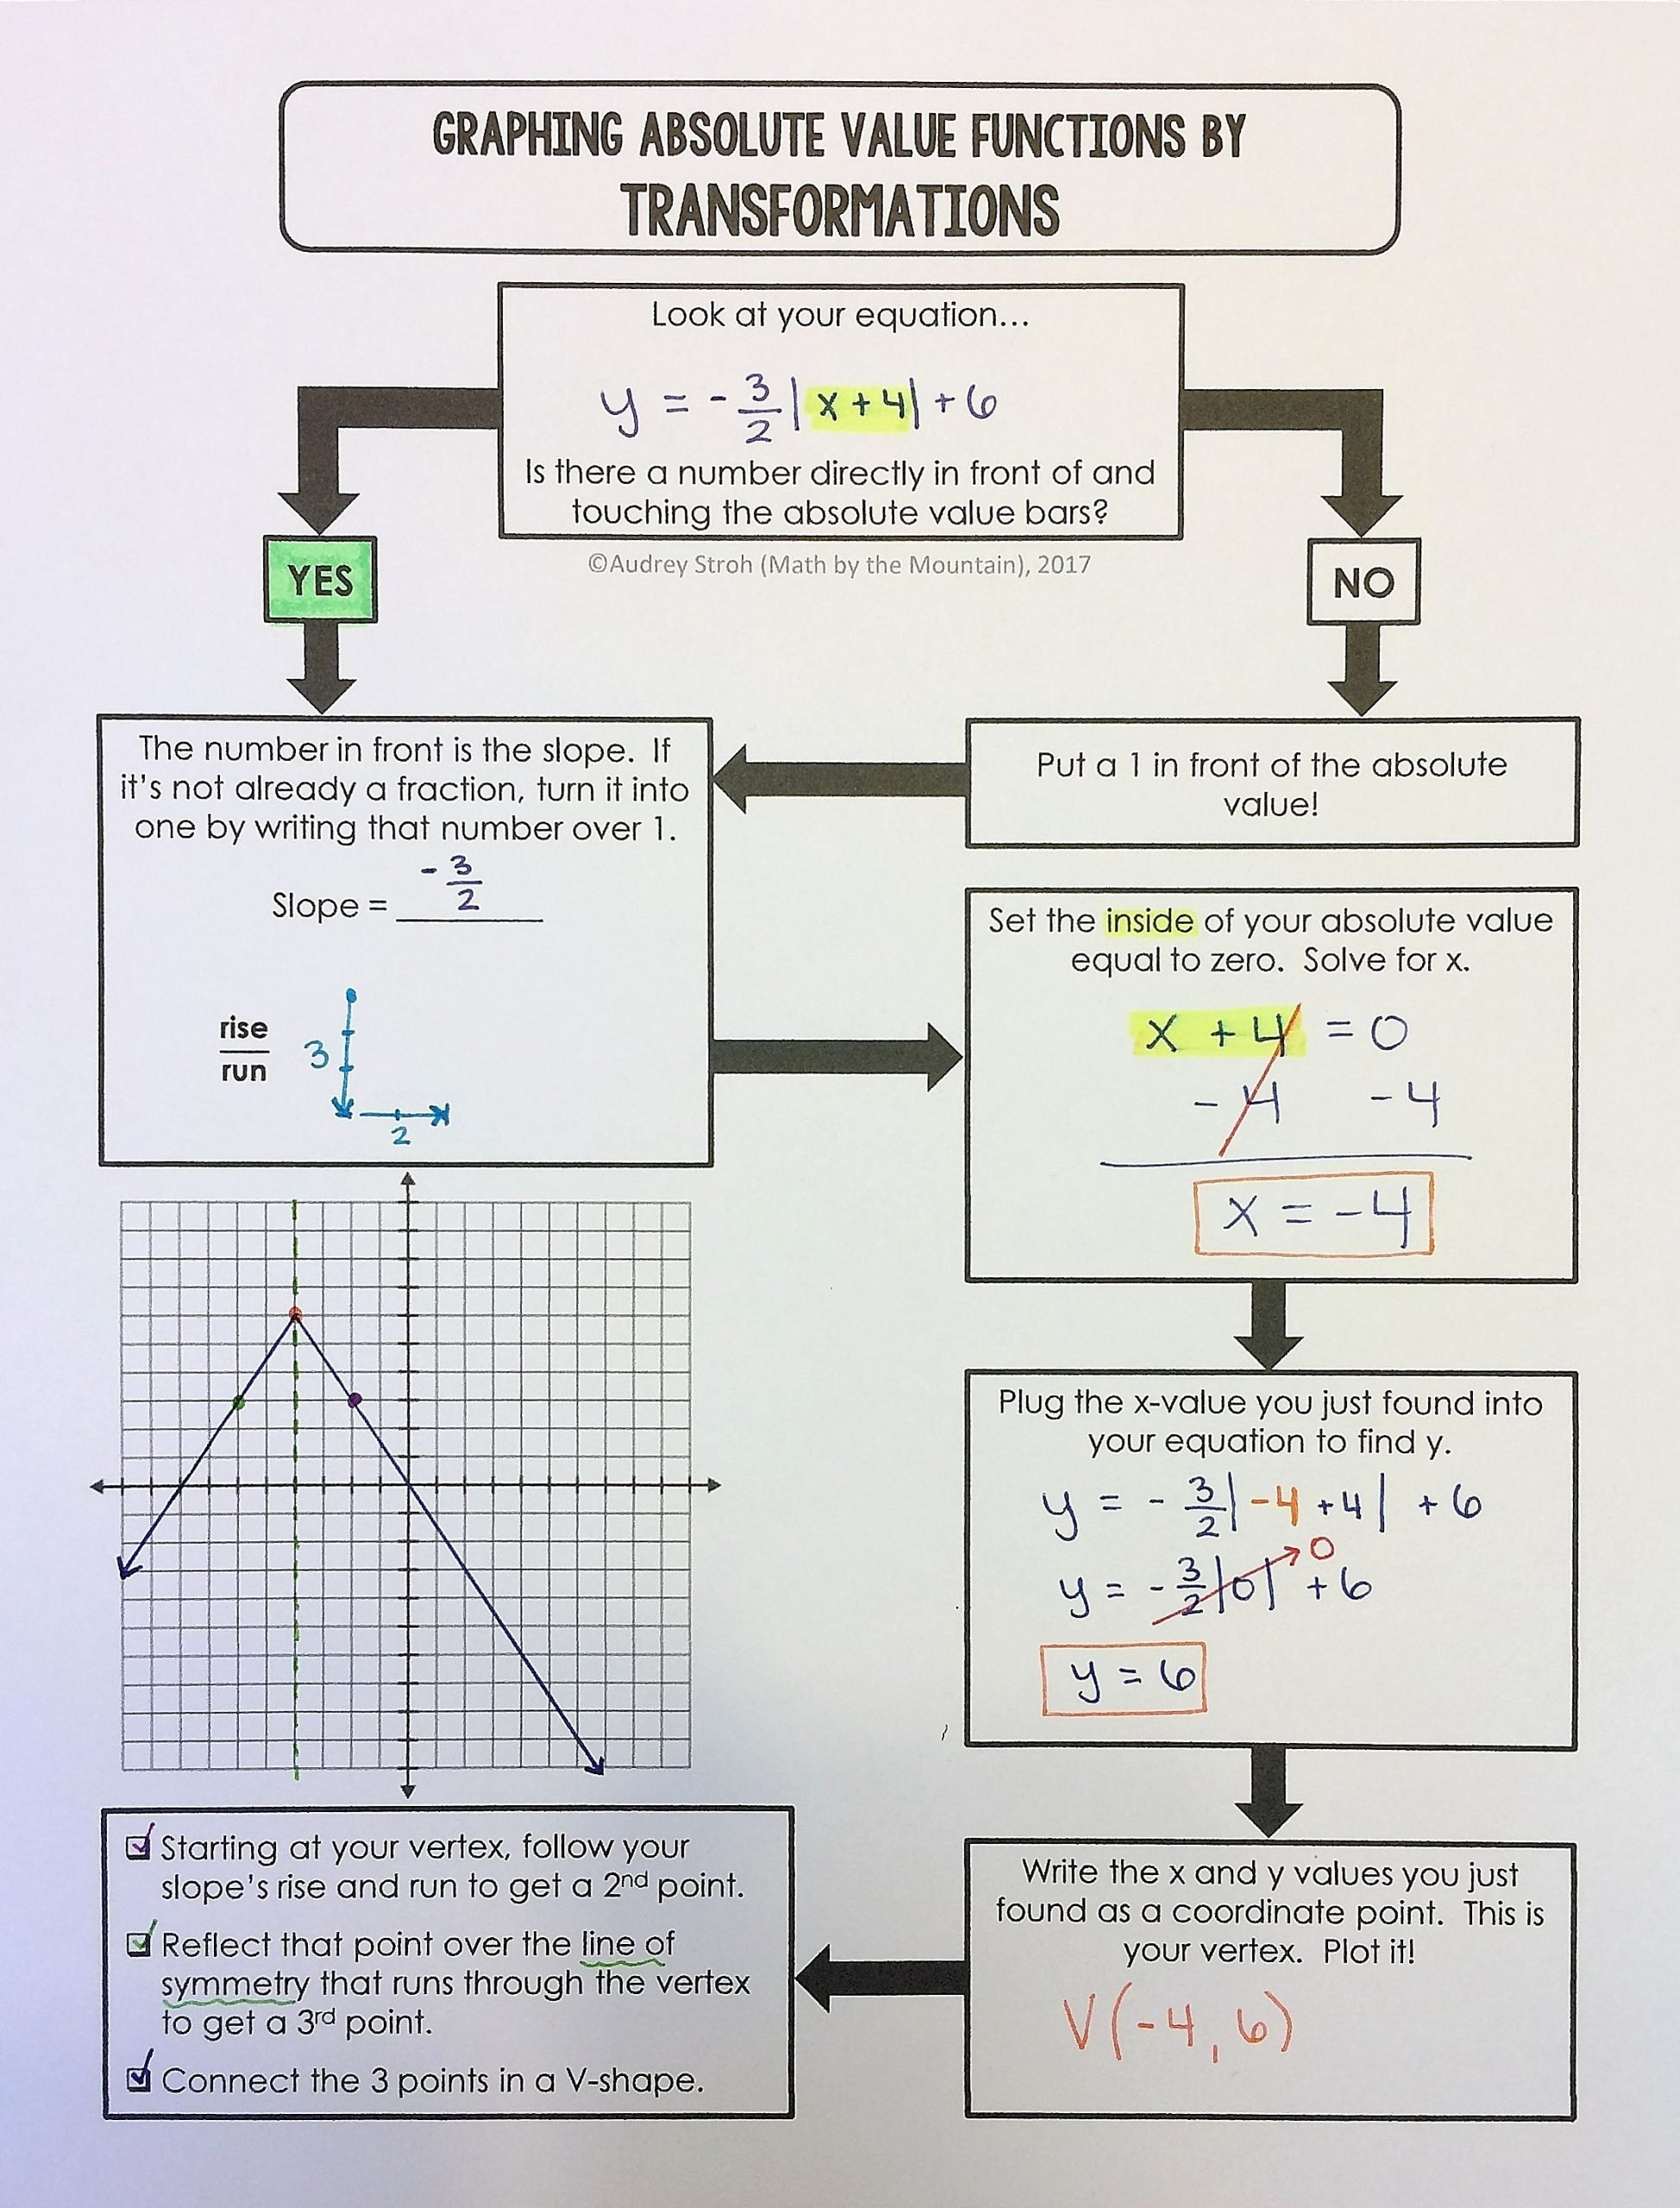 Graphing Absolute Value Functions Worksheet Printable Graphing Absolute Value Functions Flowchart Graphic